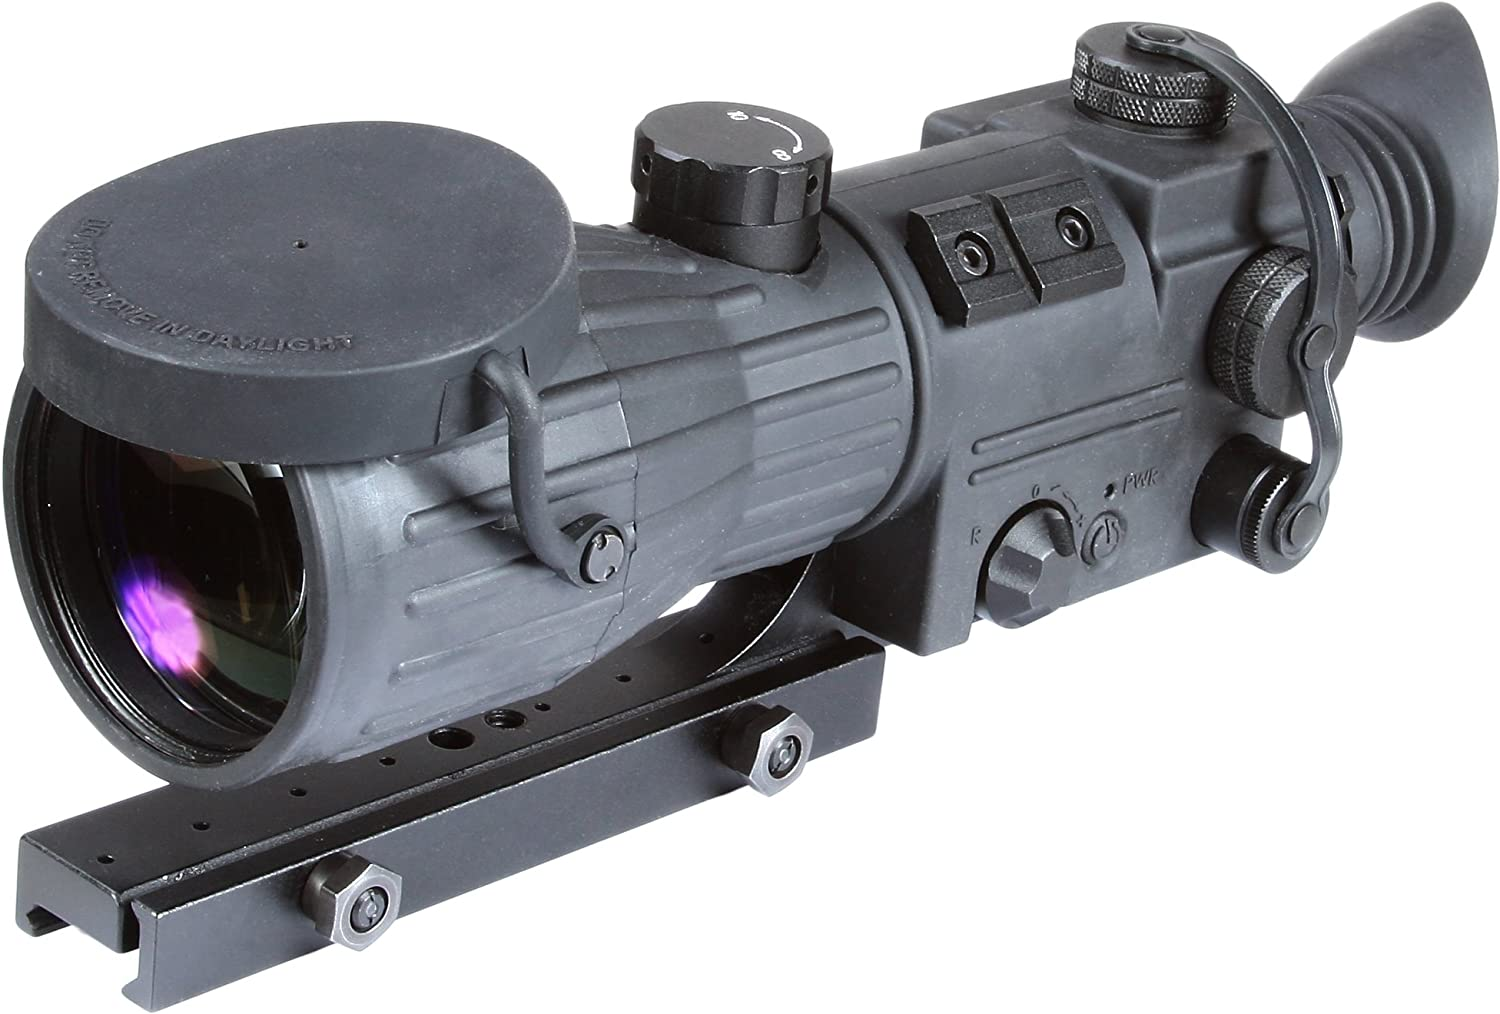 Armasight Orion 5X- Best Night Vision Money Can Buy